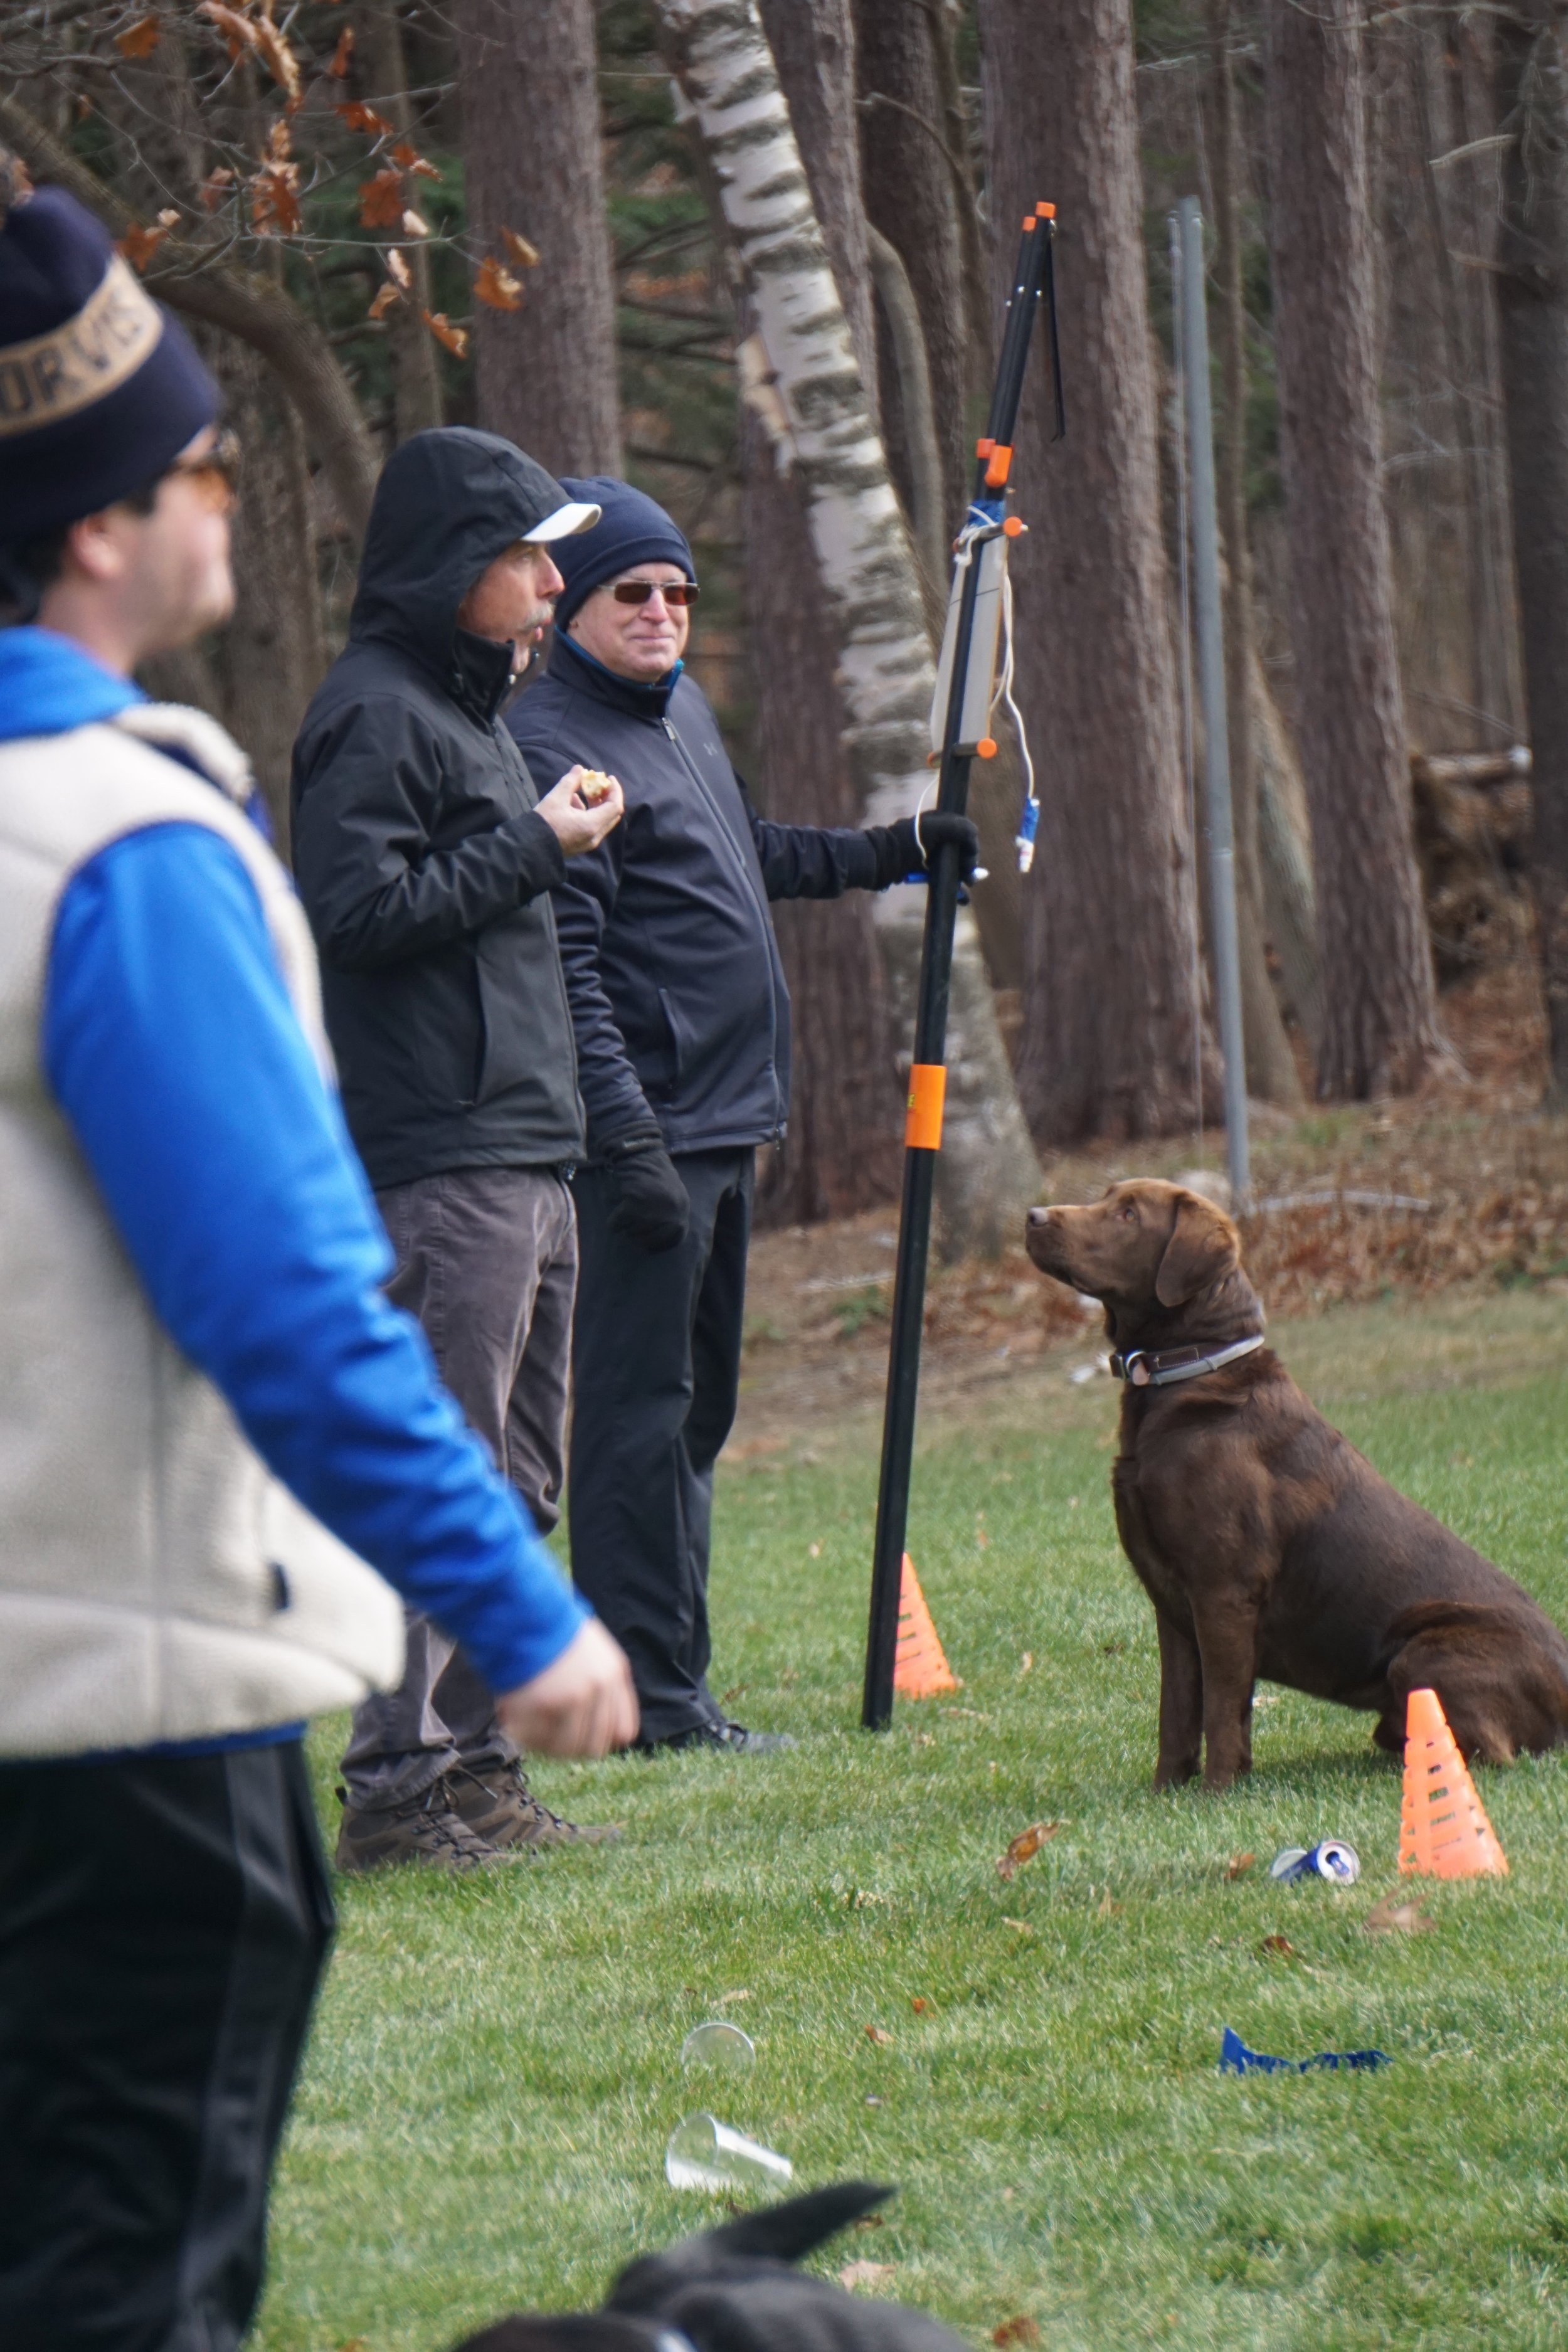 Some dogs prefer to watch the line judges eat donuts.